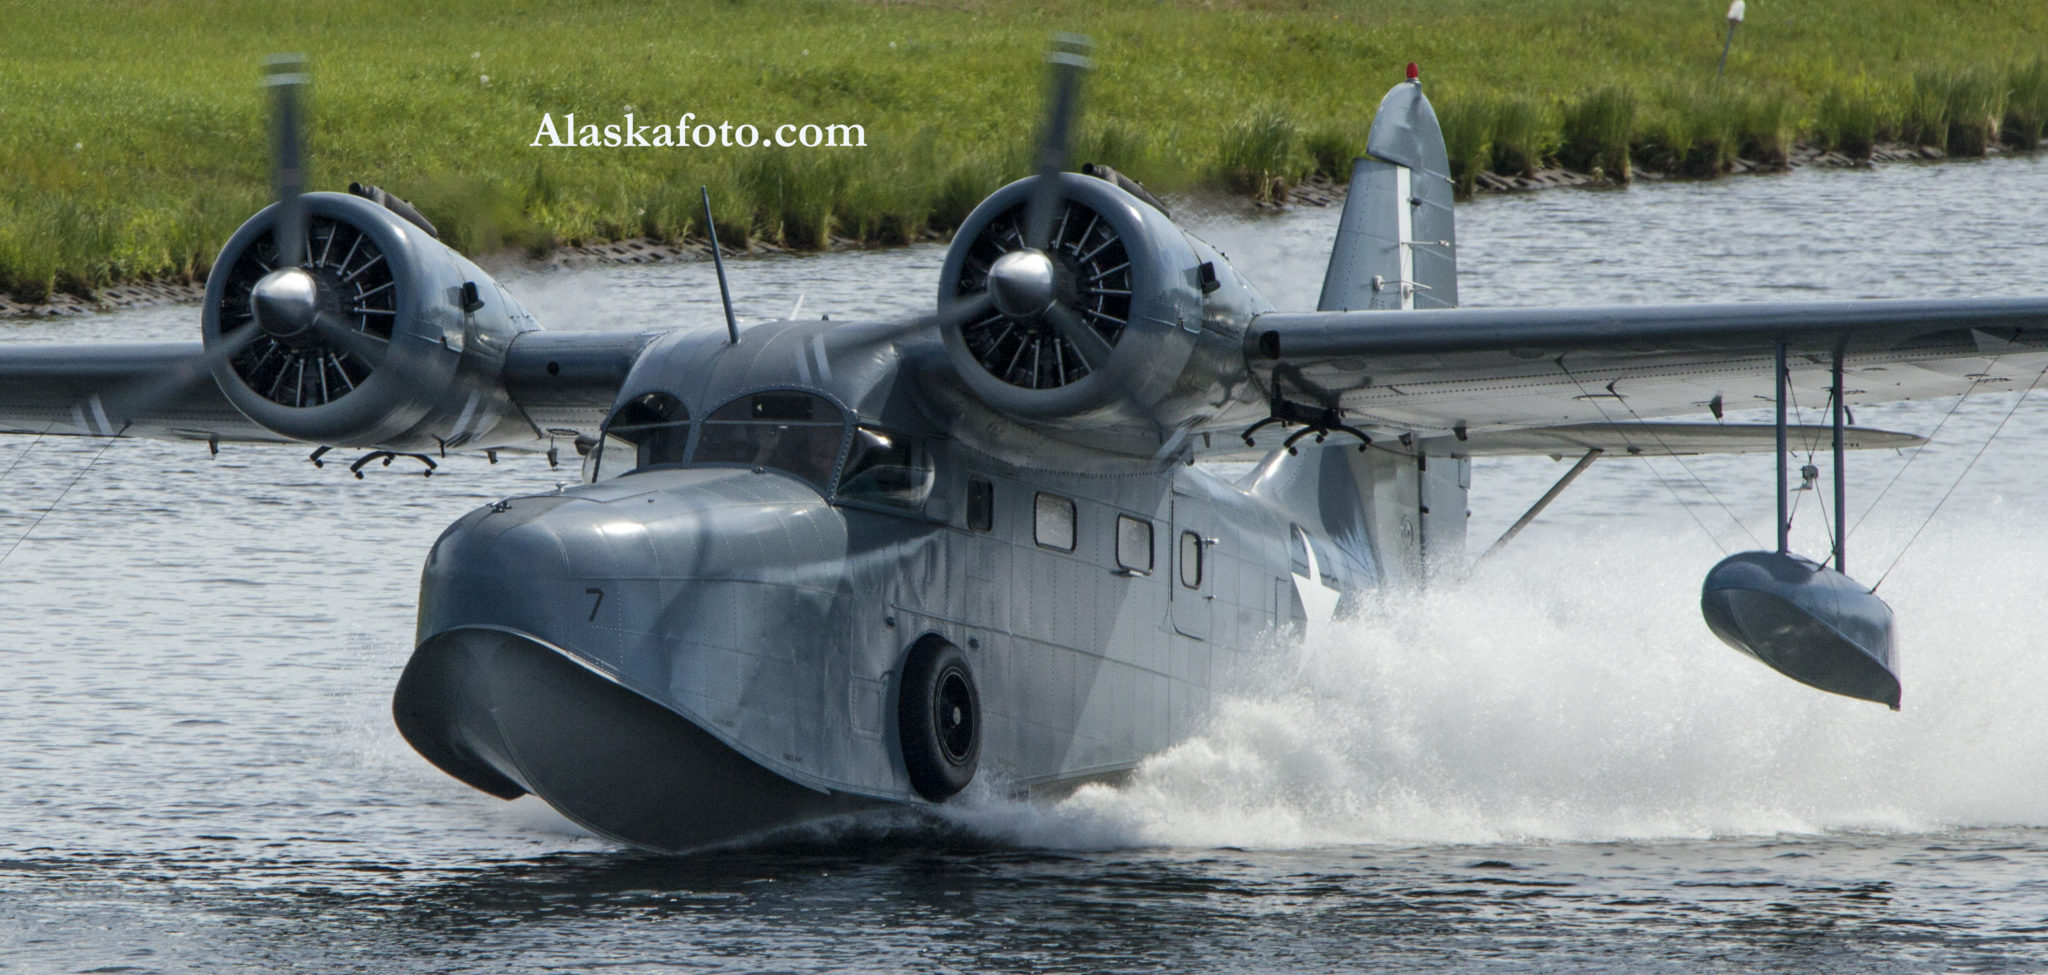 Aviation action on the water | Aircraft photography – Alaskafoto